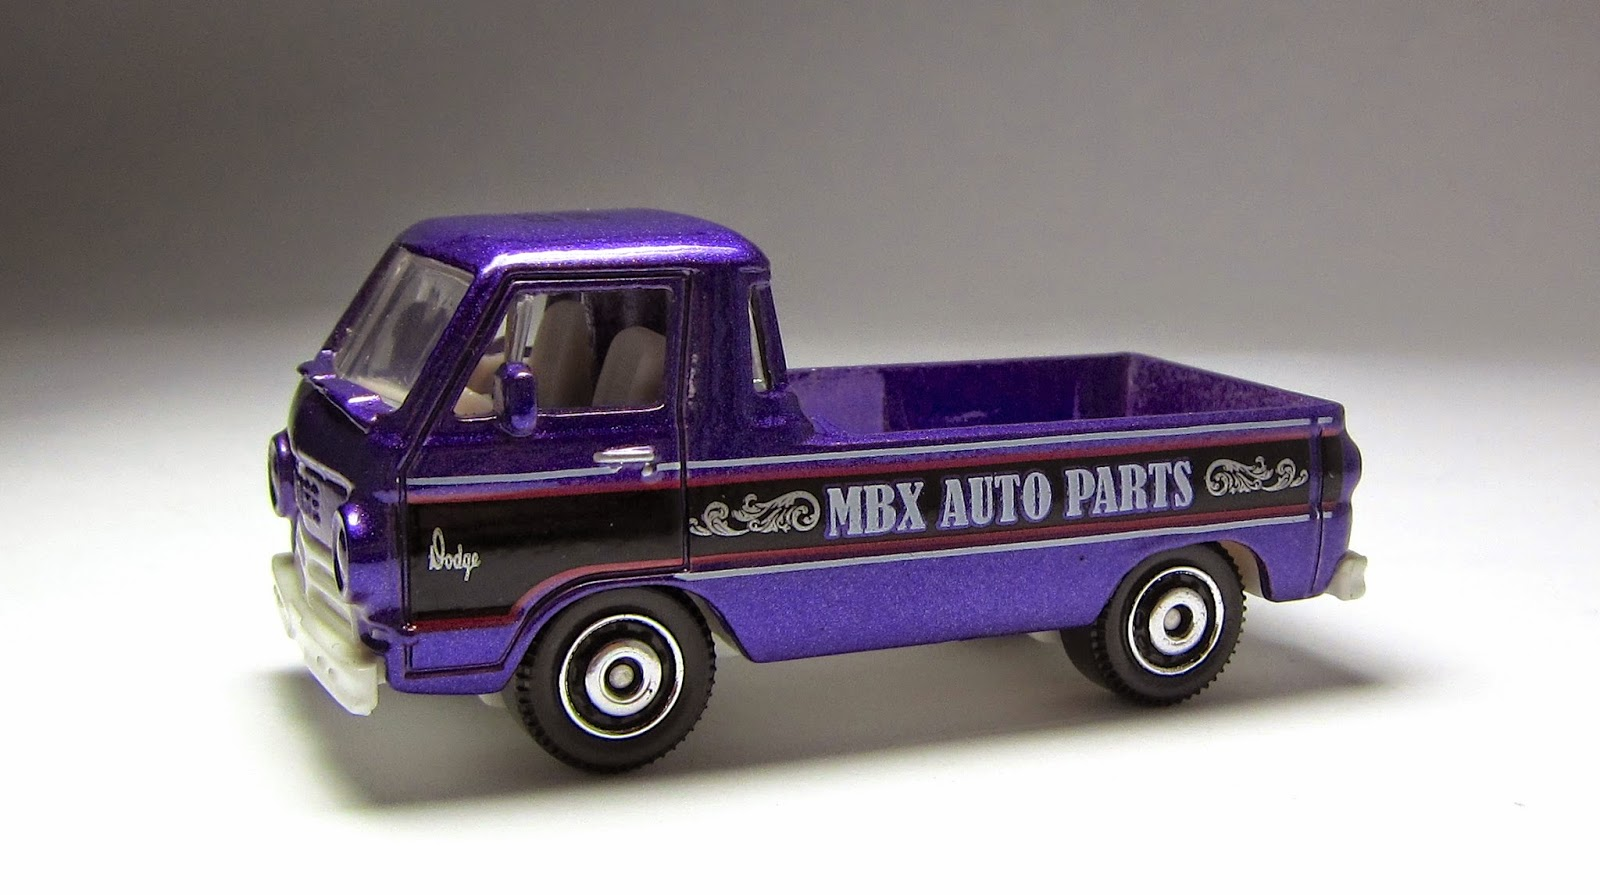 Image dodge a 100 replacement modelg matchbox cars wiki dodge a 100 replacement modelg publicscrutiny Images